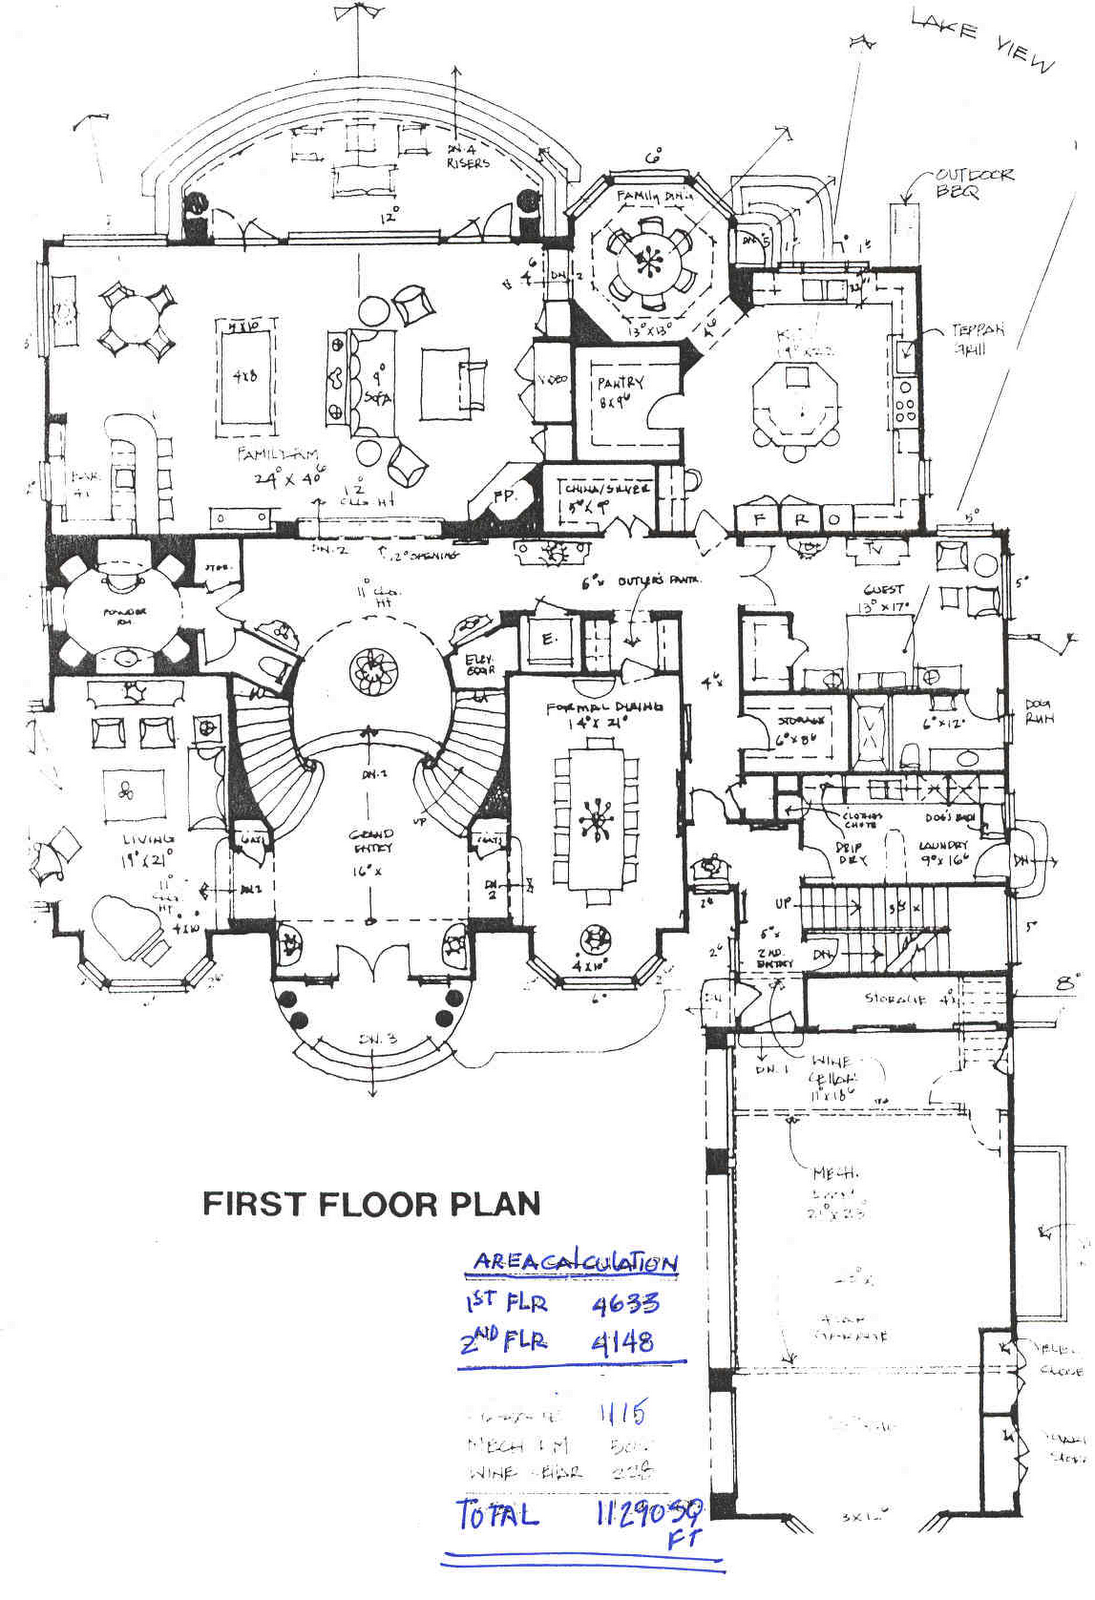 Building plans for House layout plan